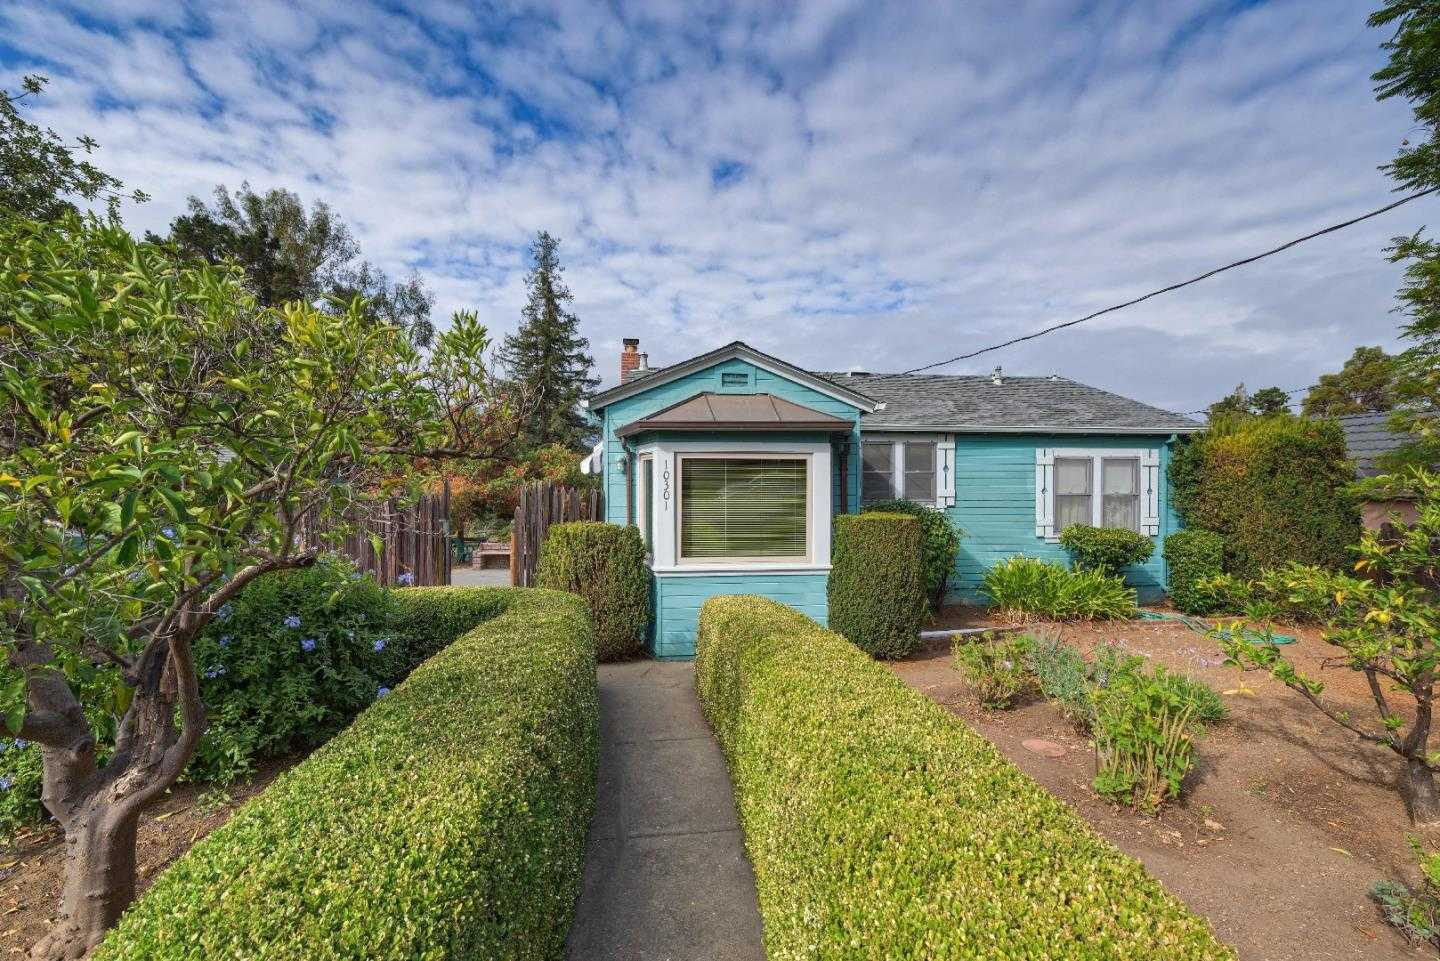 $2,148,000 - 3Br/1Ba -  for Sale in Cupertino